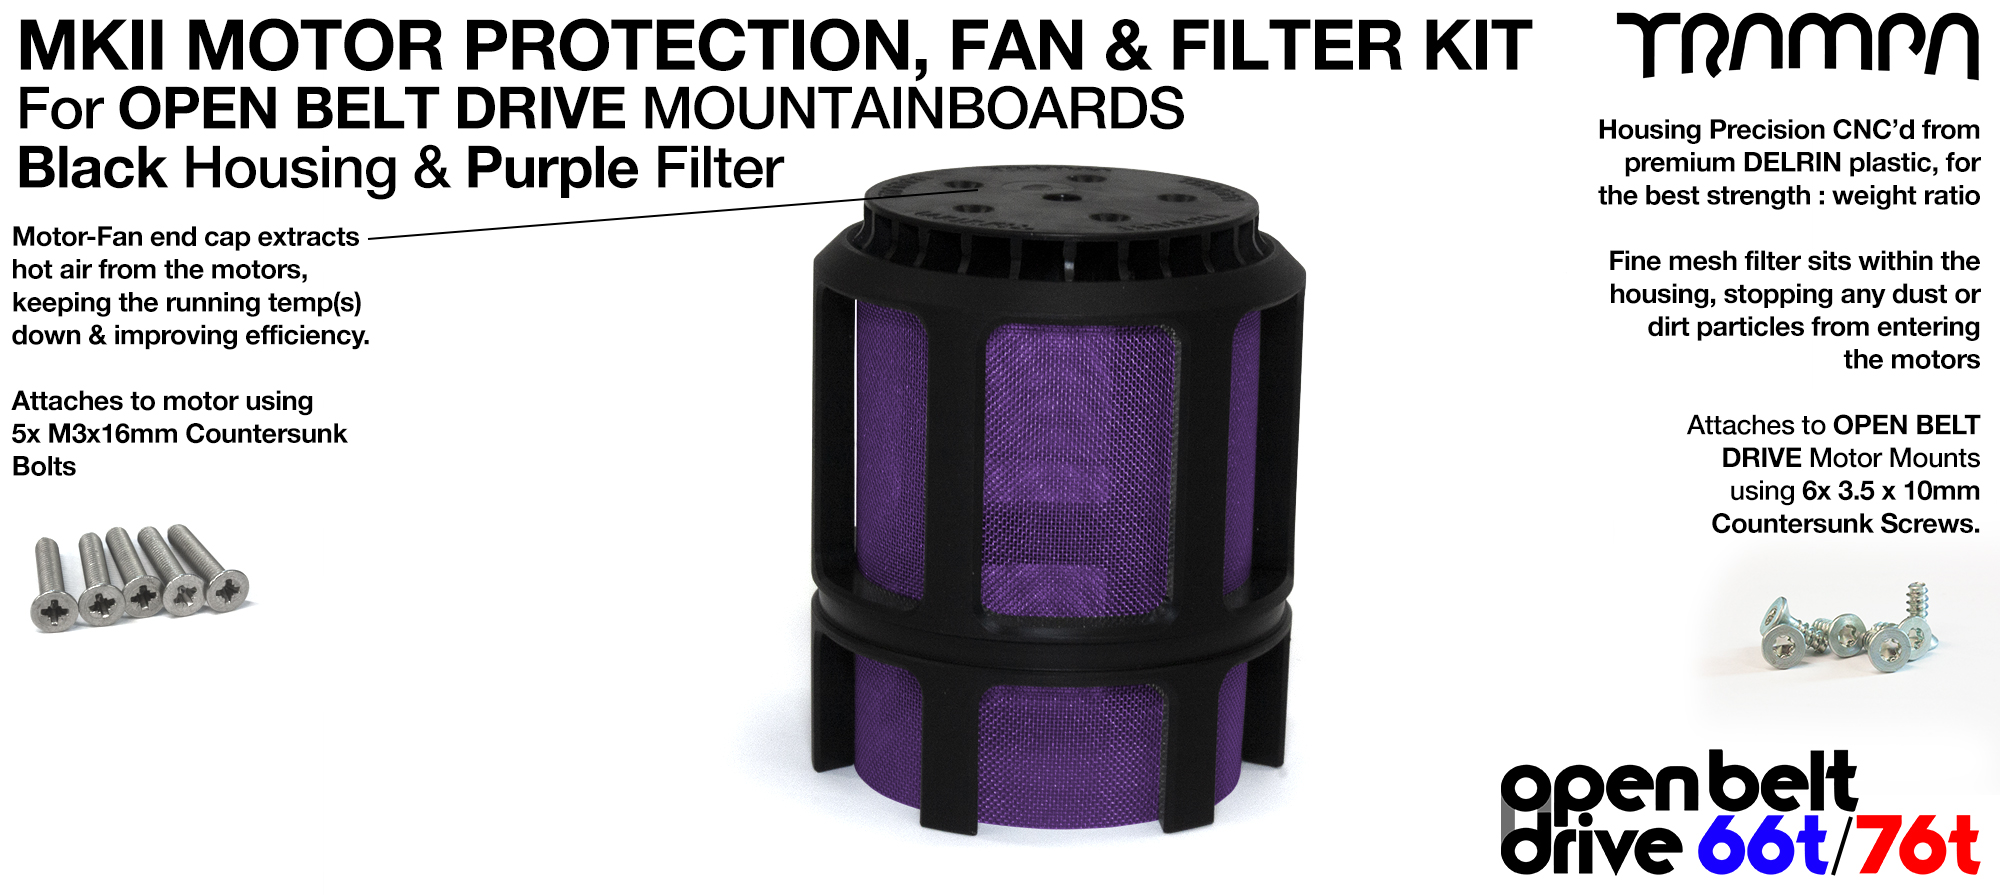 1x OBD MKII Motor protection Sleeve with PURPLE Filter